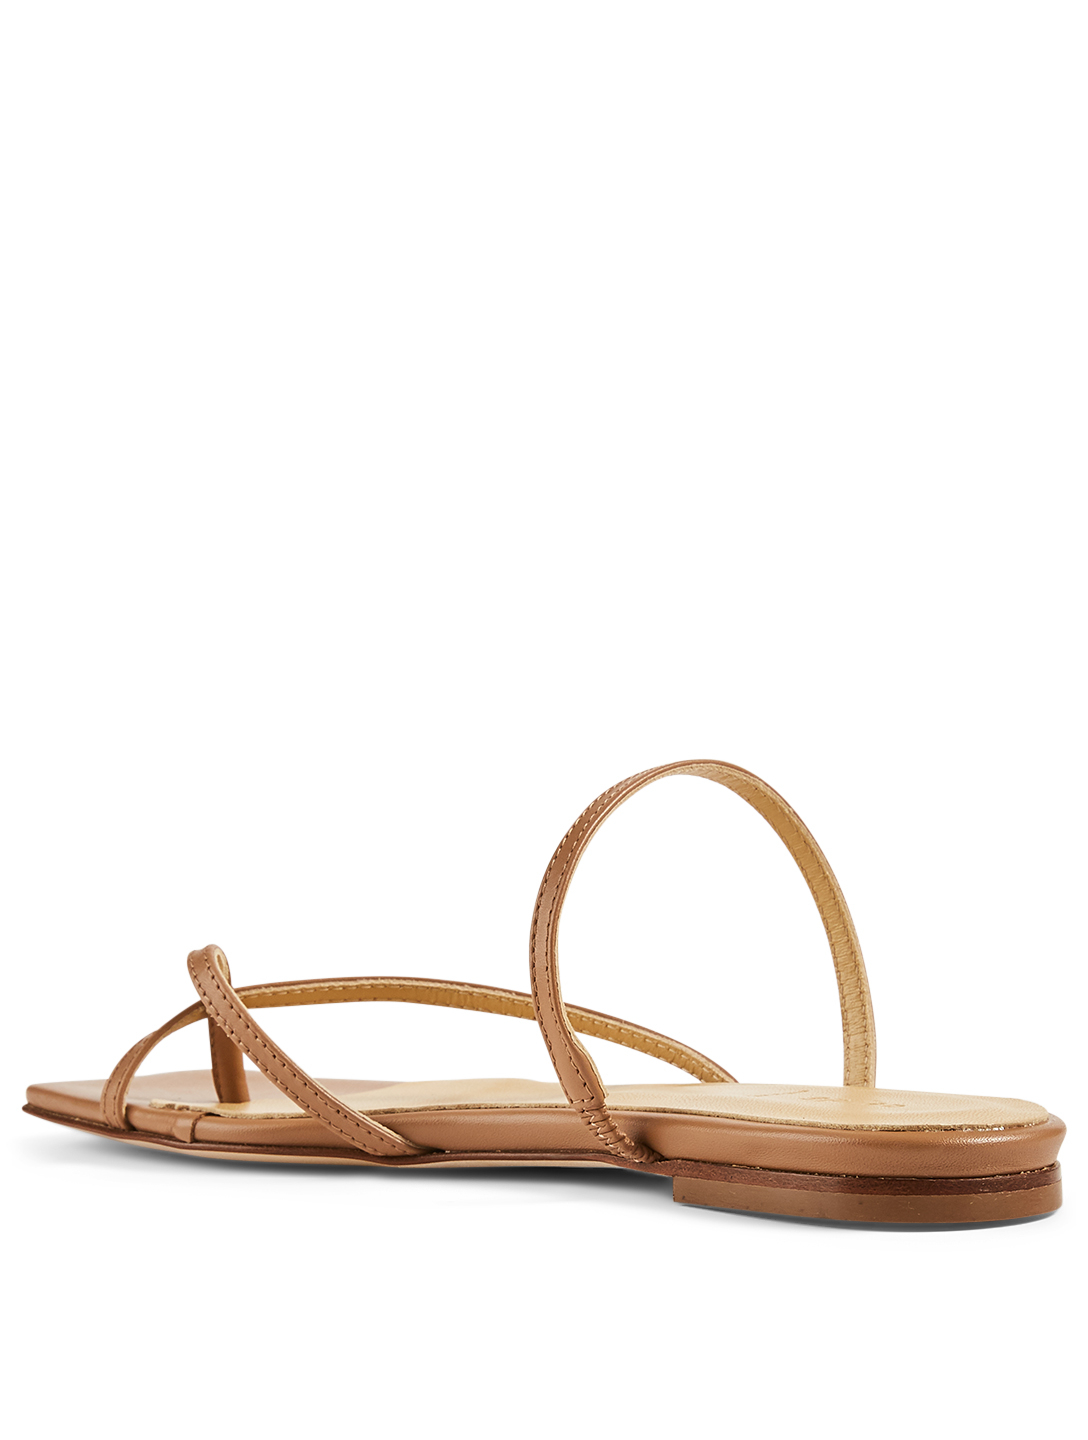 AEYDE Marina Leather Sandals Women's Beige